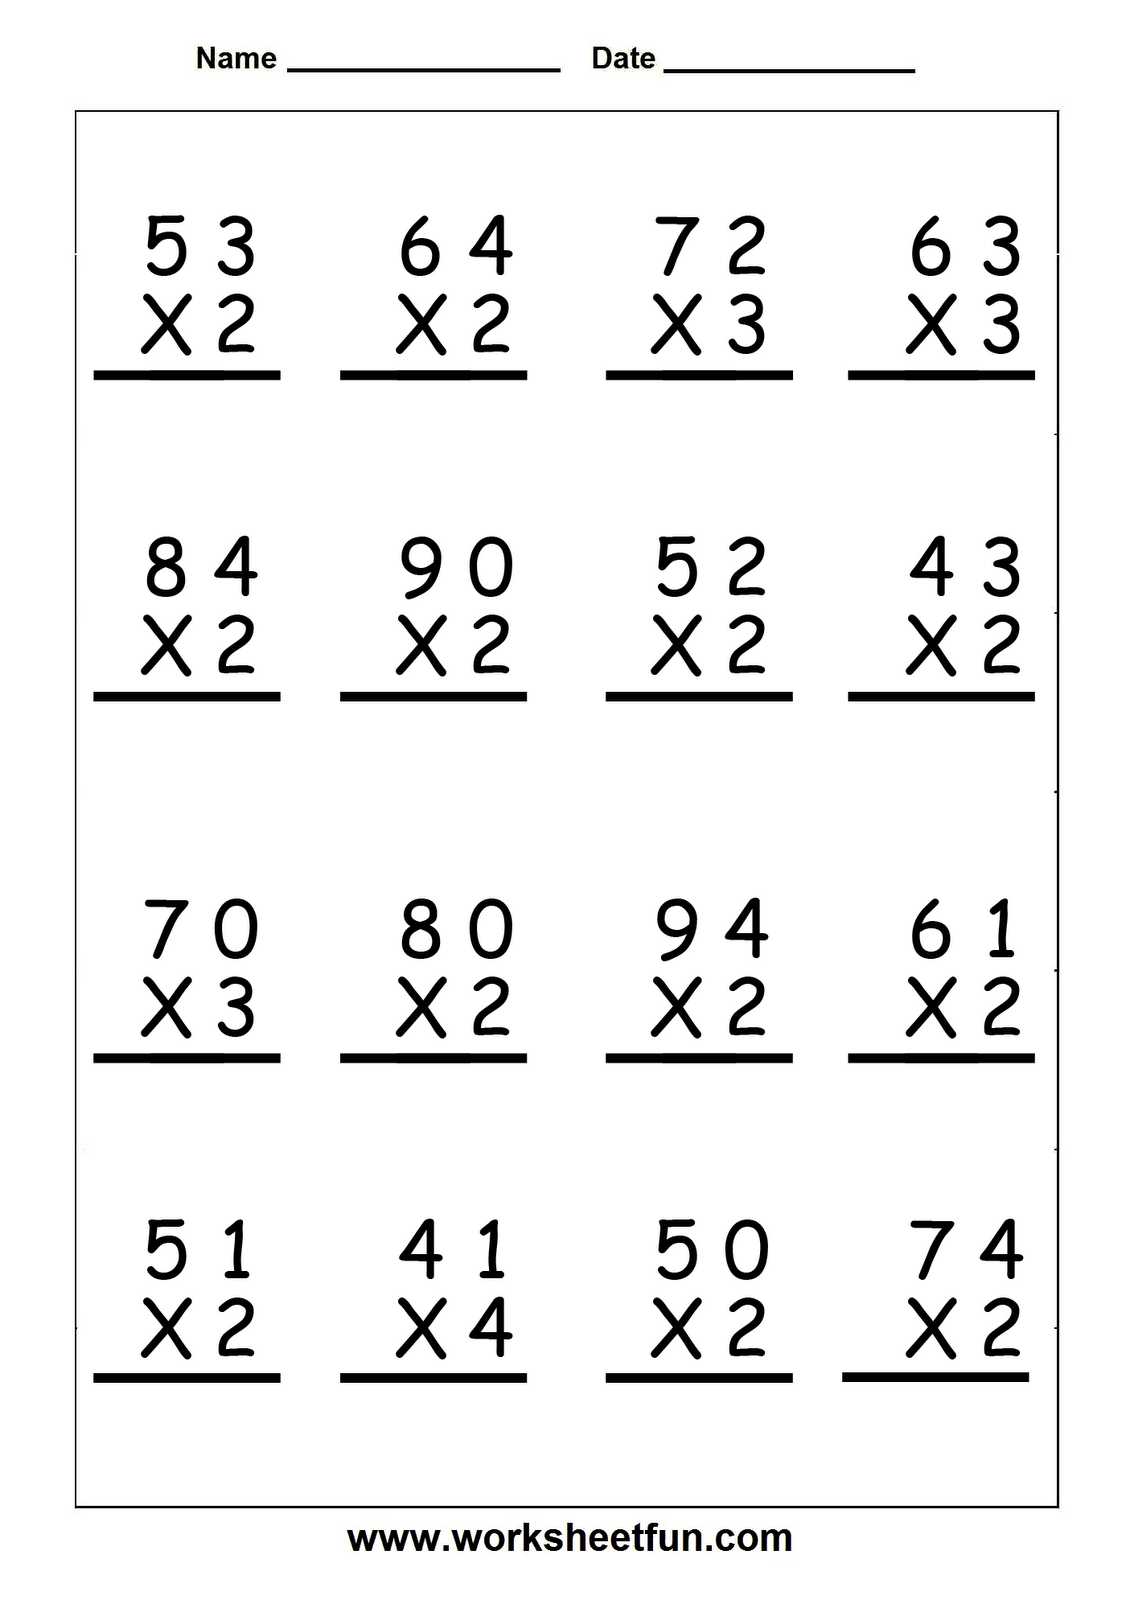 hight resolution of multiplication worksheets grade 5 - Google Search   Math fact worksheets